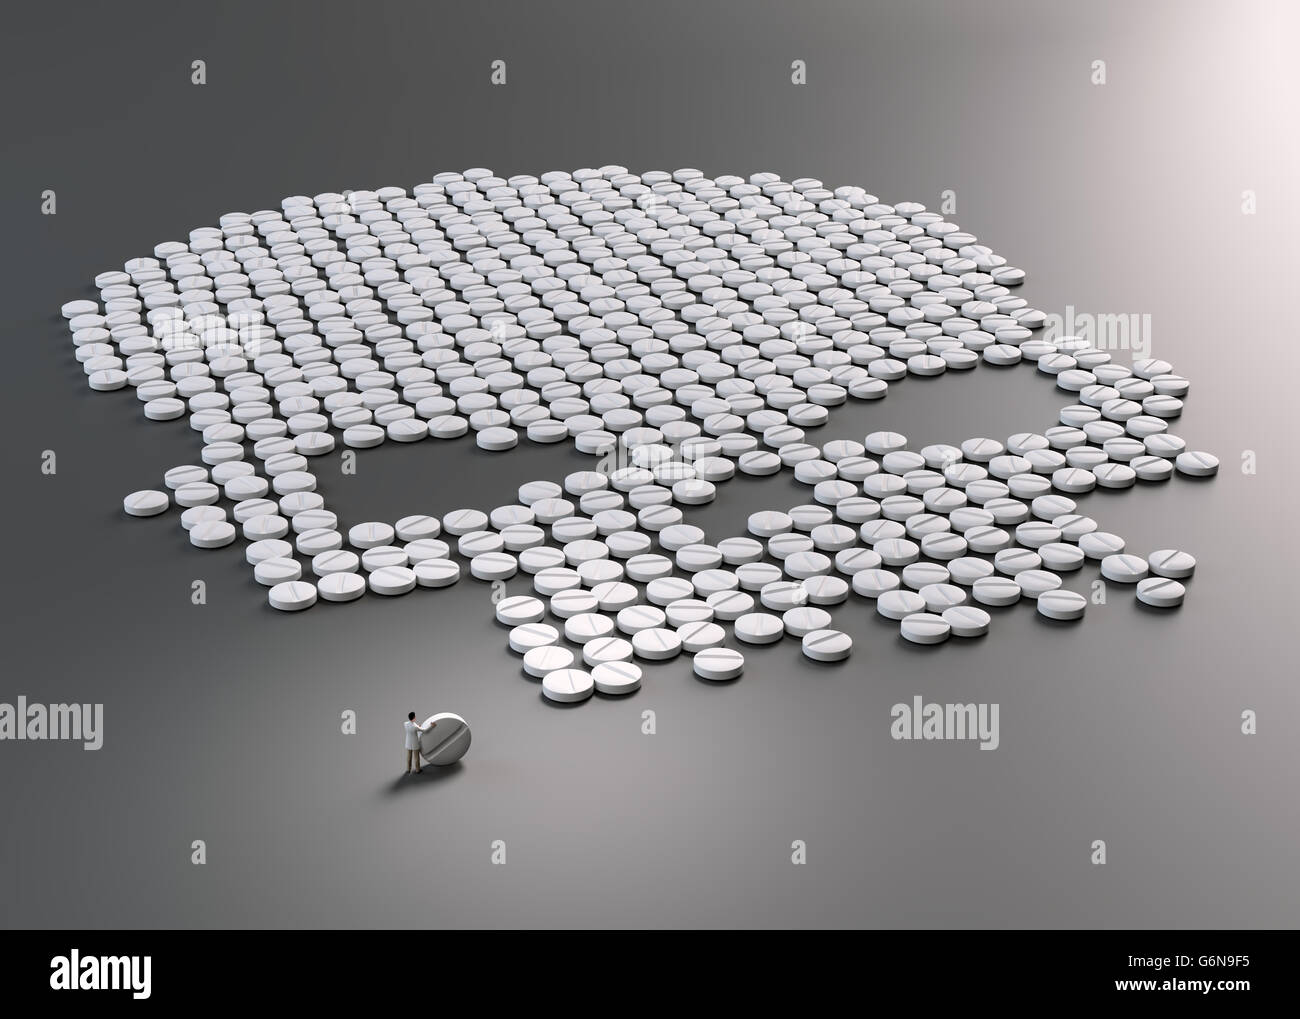 Comprimés formant un symbole du crâne - la toxicomanie concept 3D illustration Photo Stock